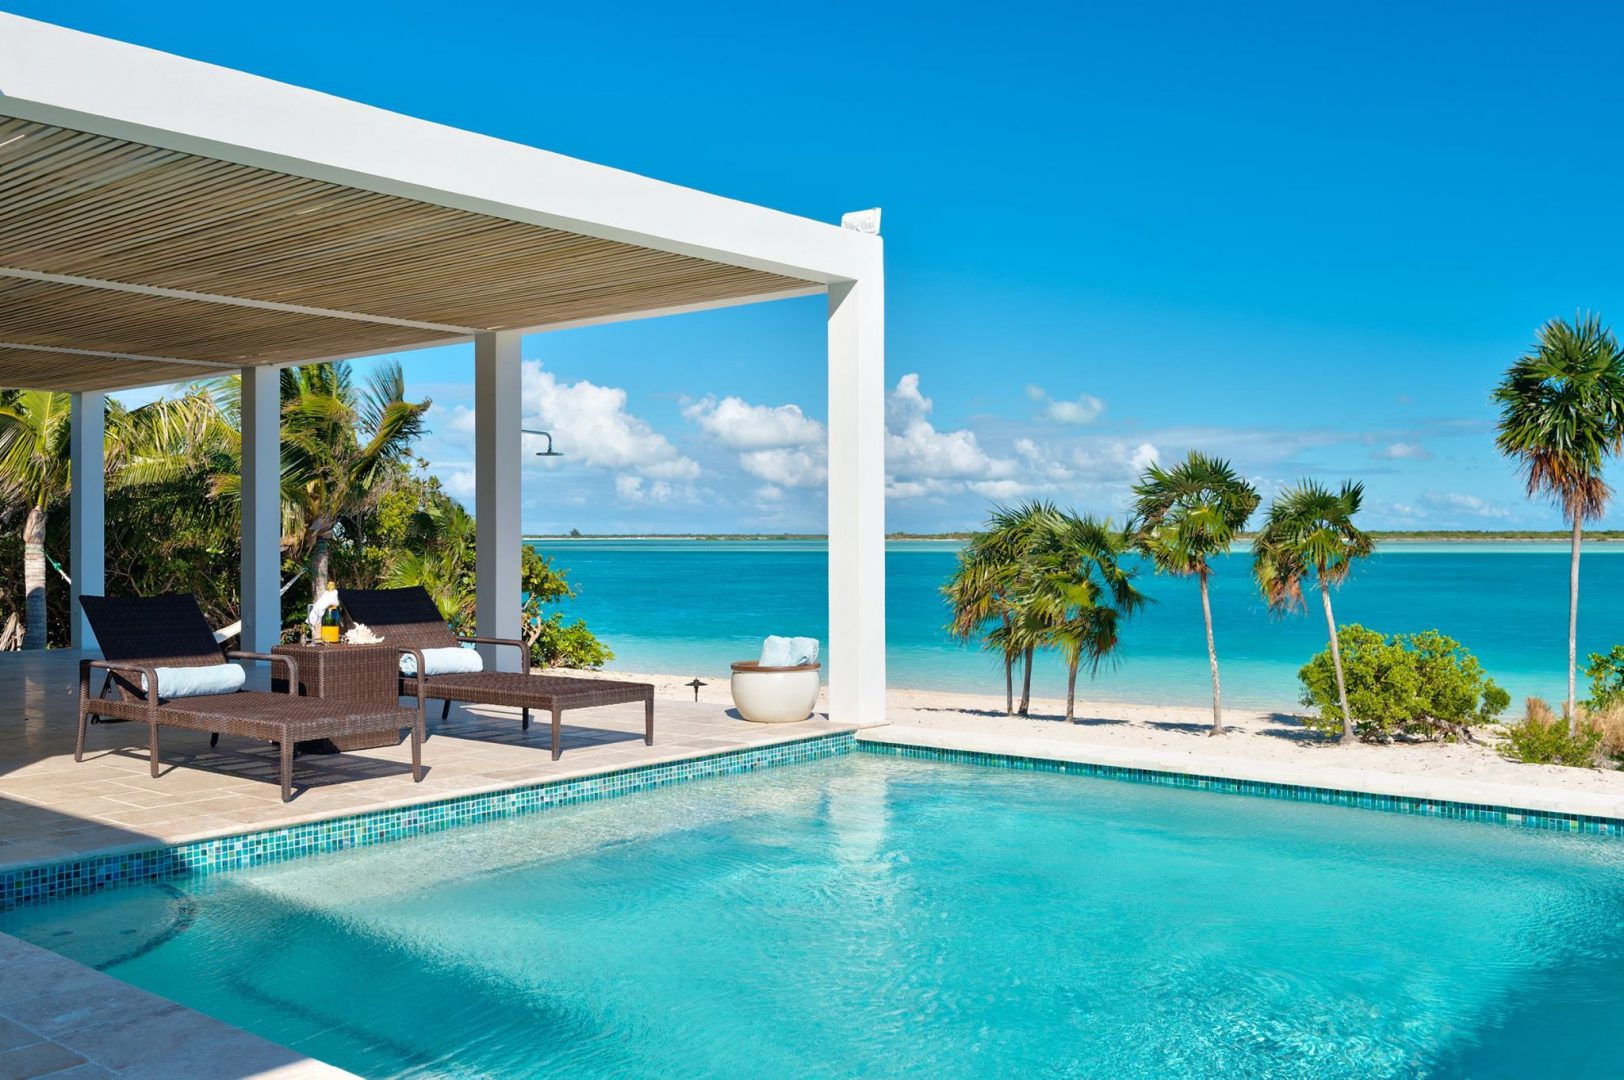 Villa Aquazure on Providenciales Turks and Caicos